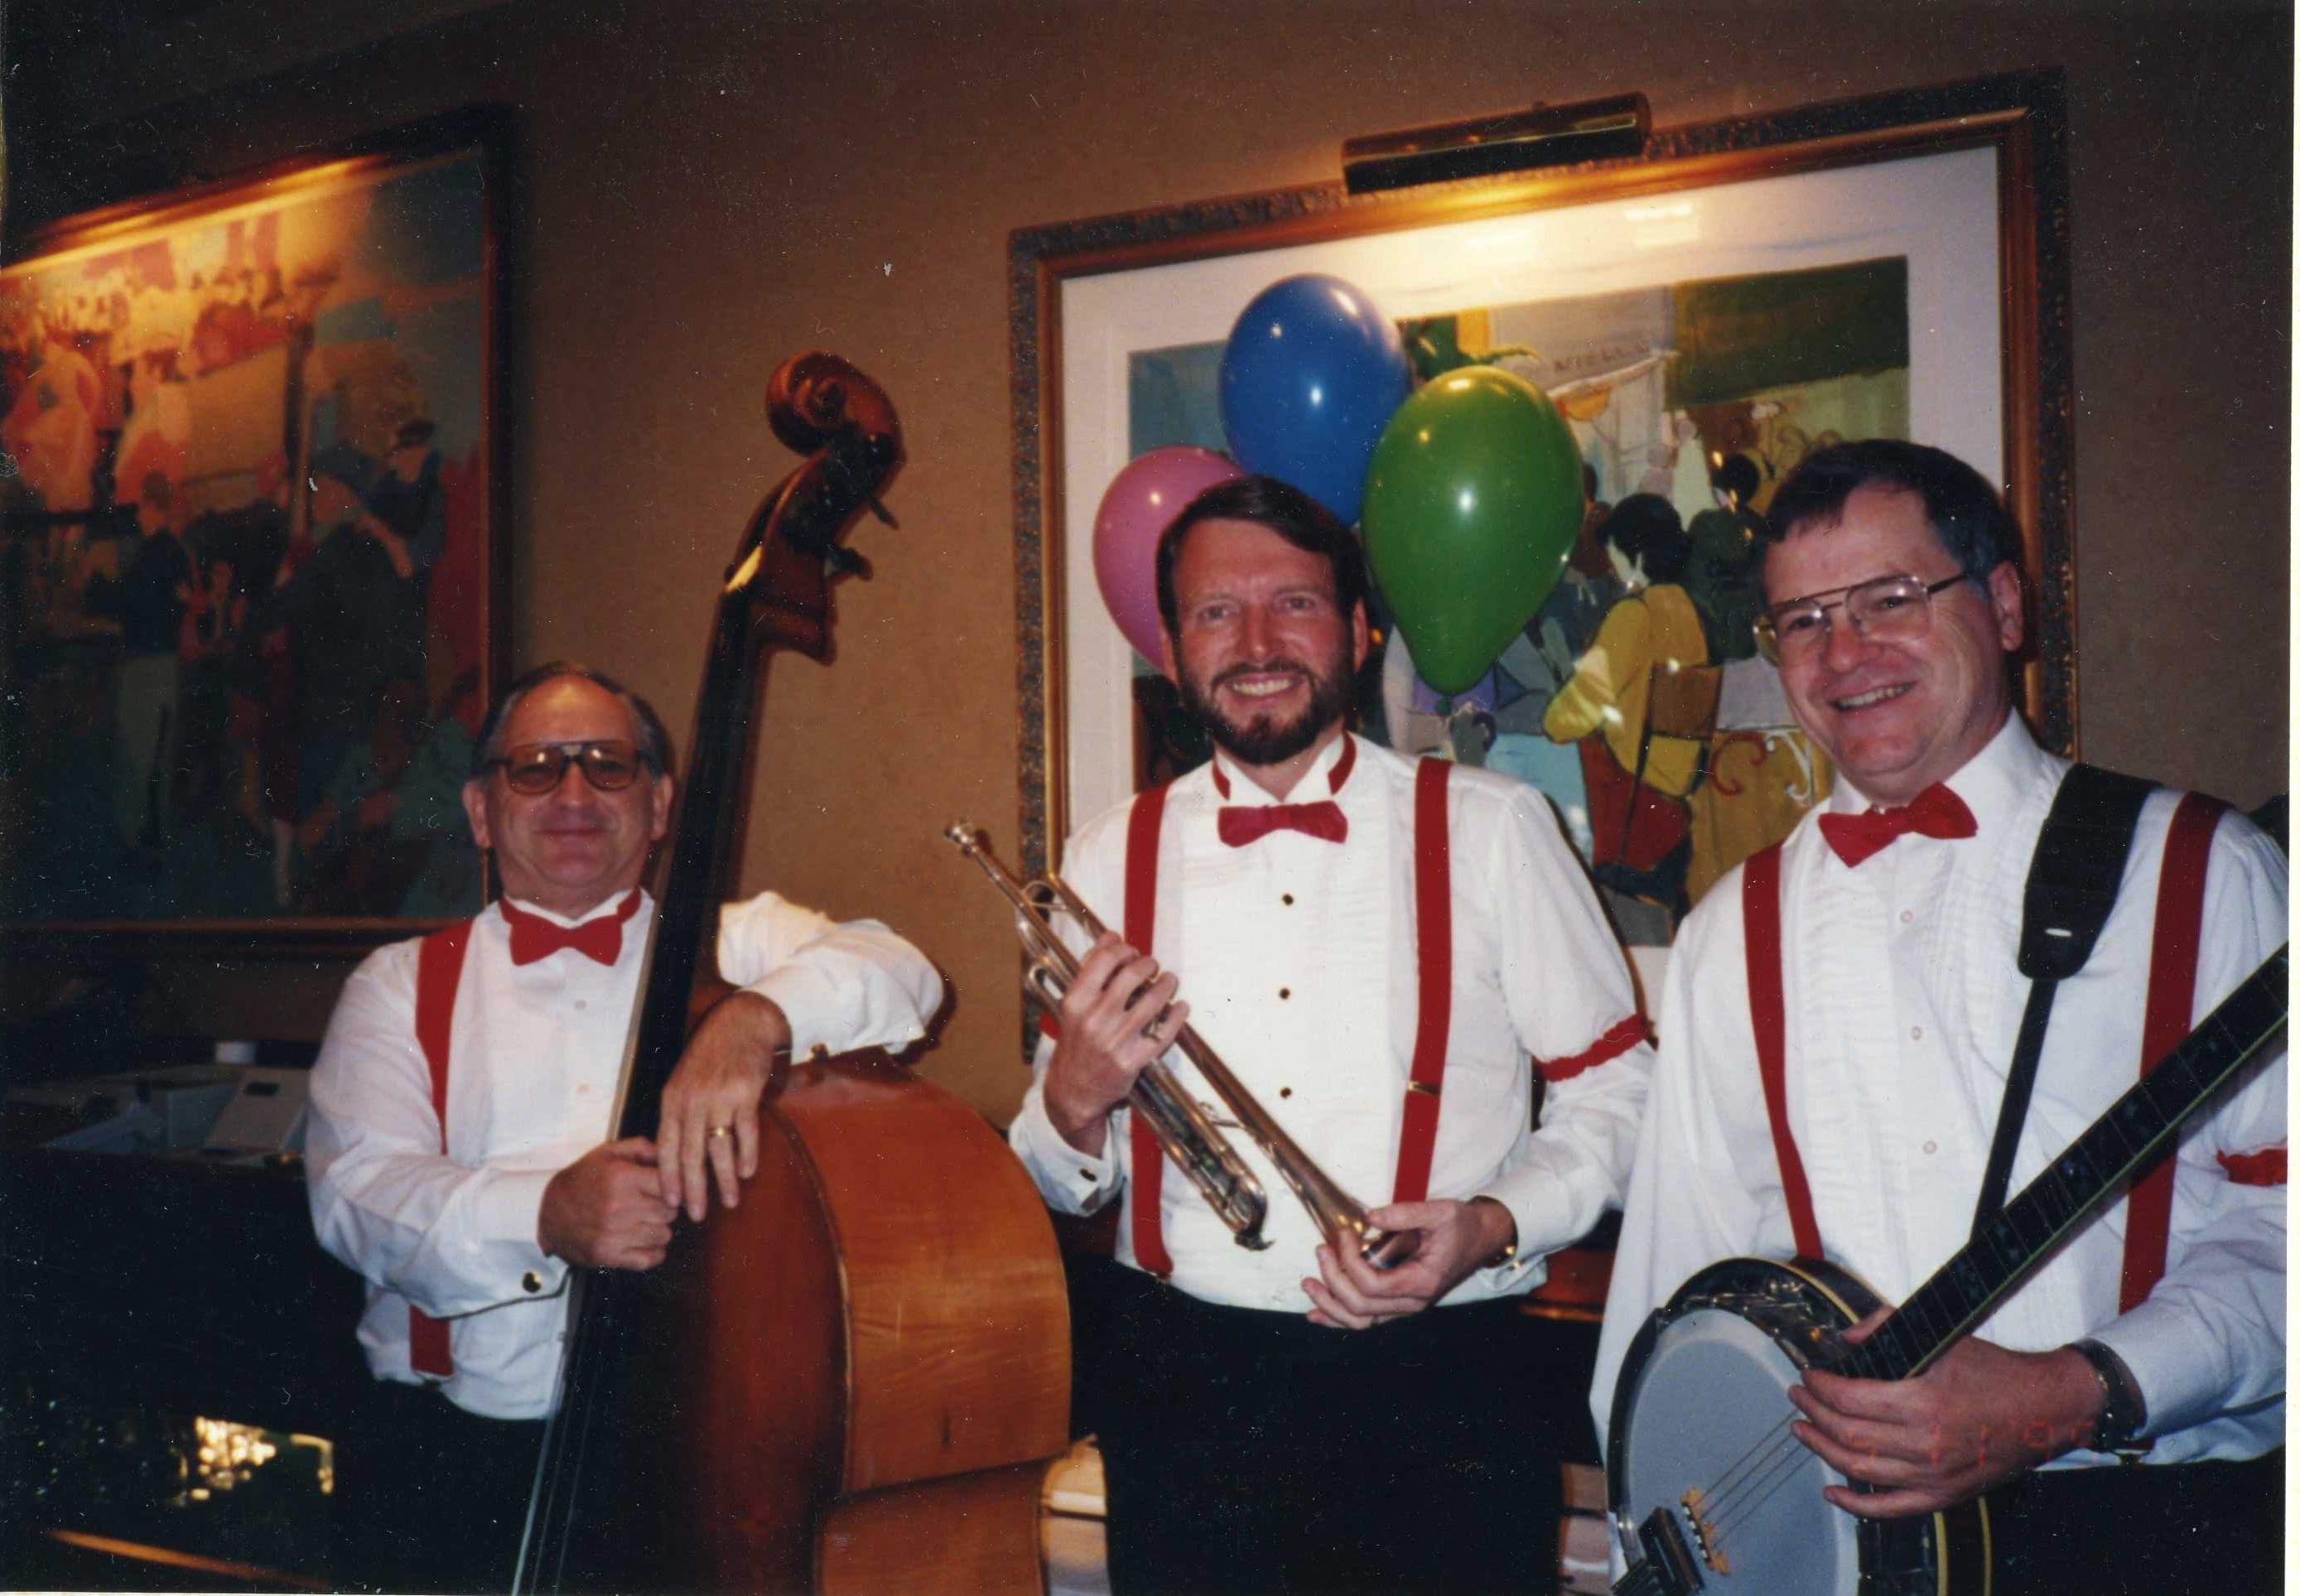 The Tom Battenberg Trio